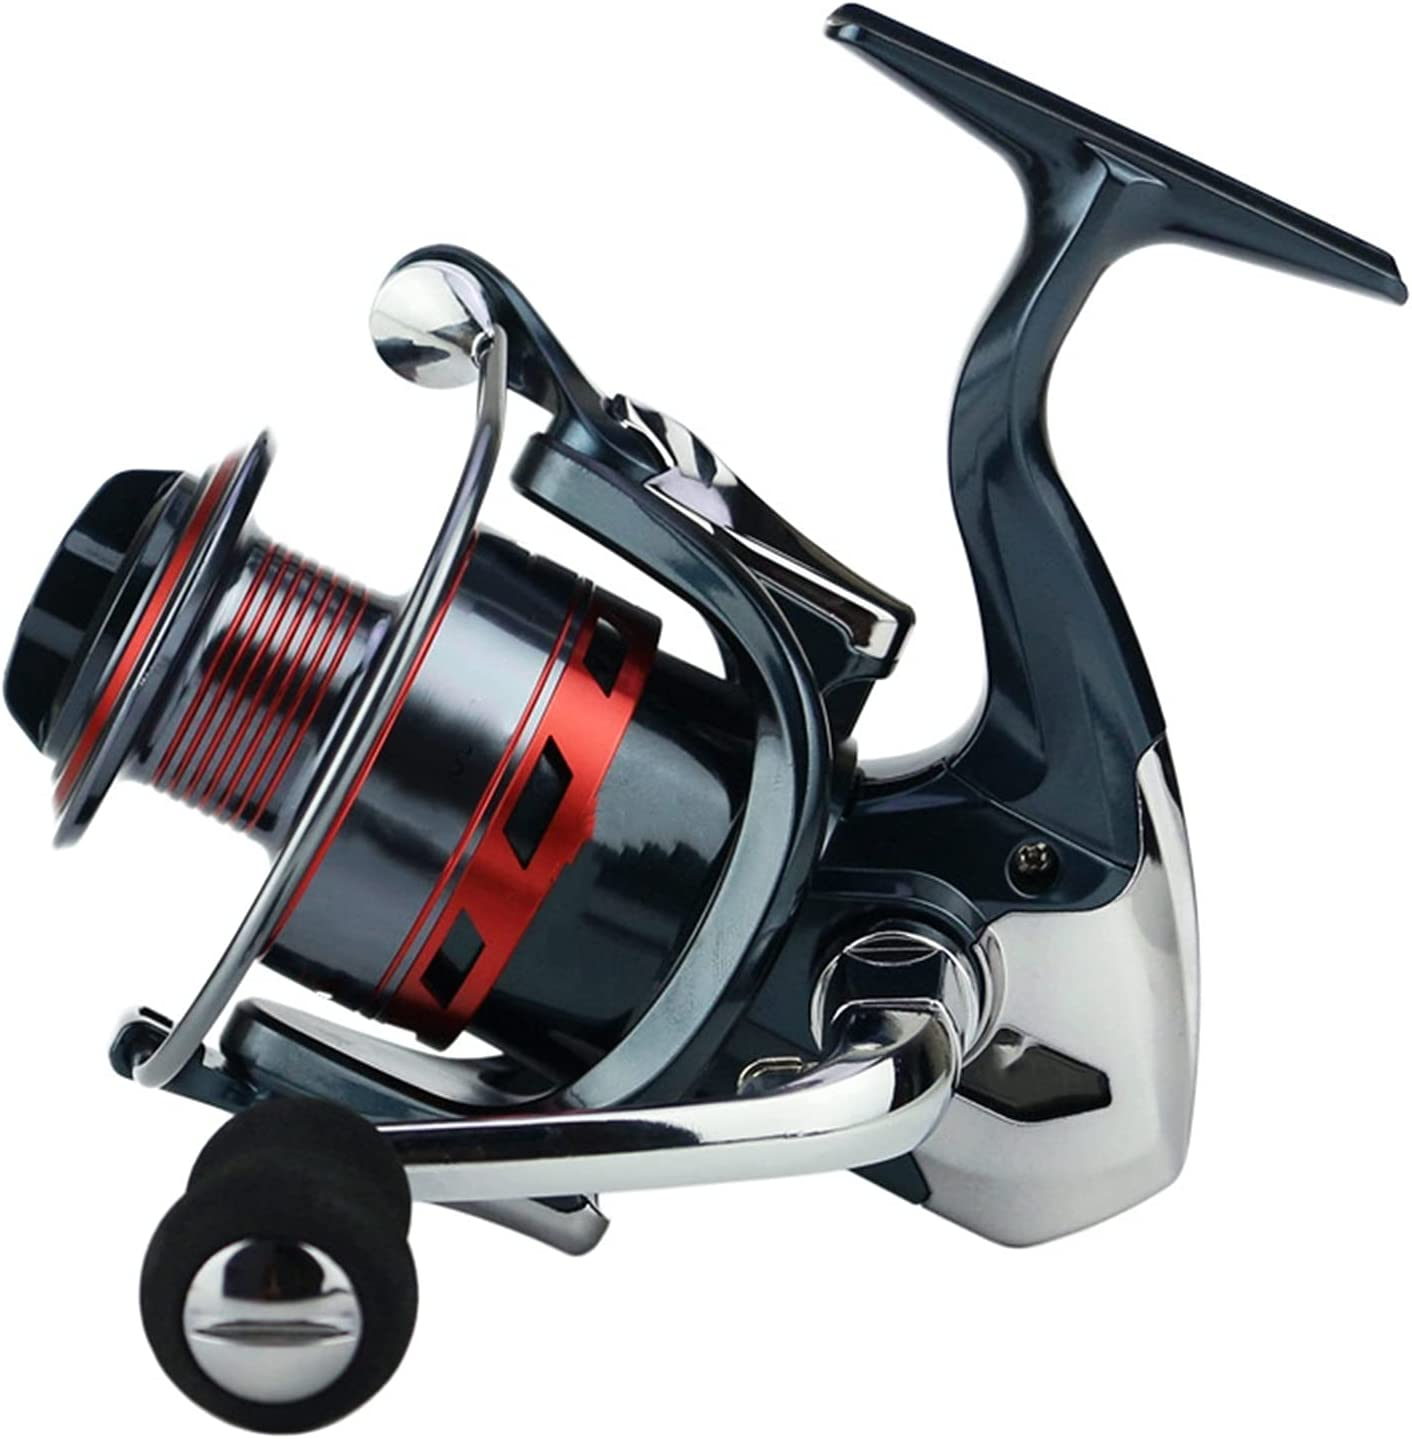 ACYC Fishing Reels New sales Reel Directly managed store XS1000-7000 Folding Spin Series